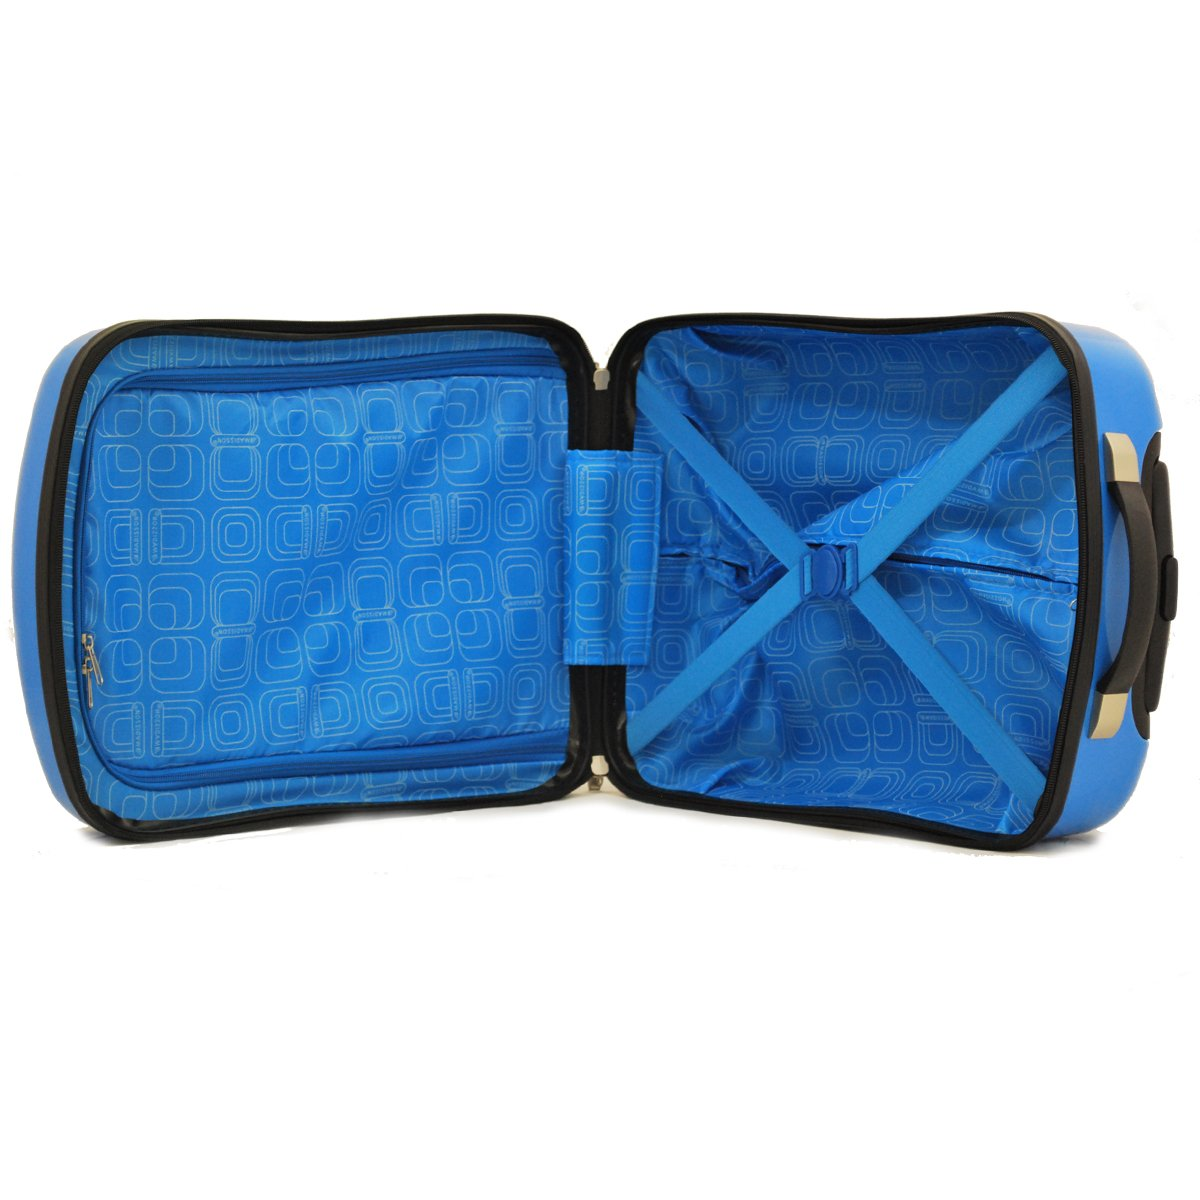 Valise cabine 2 roues MADISSON Voiture - Bleu